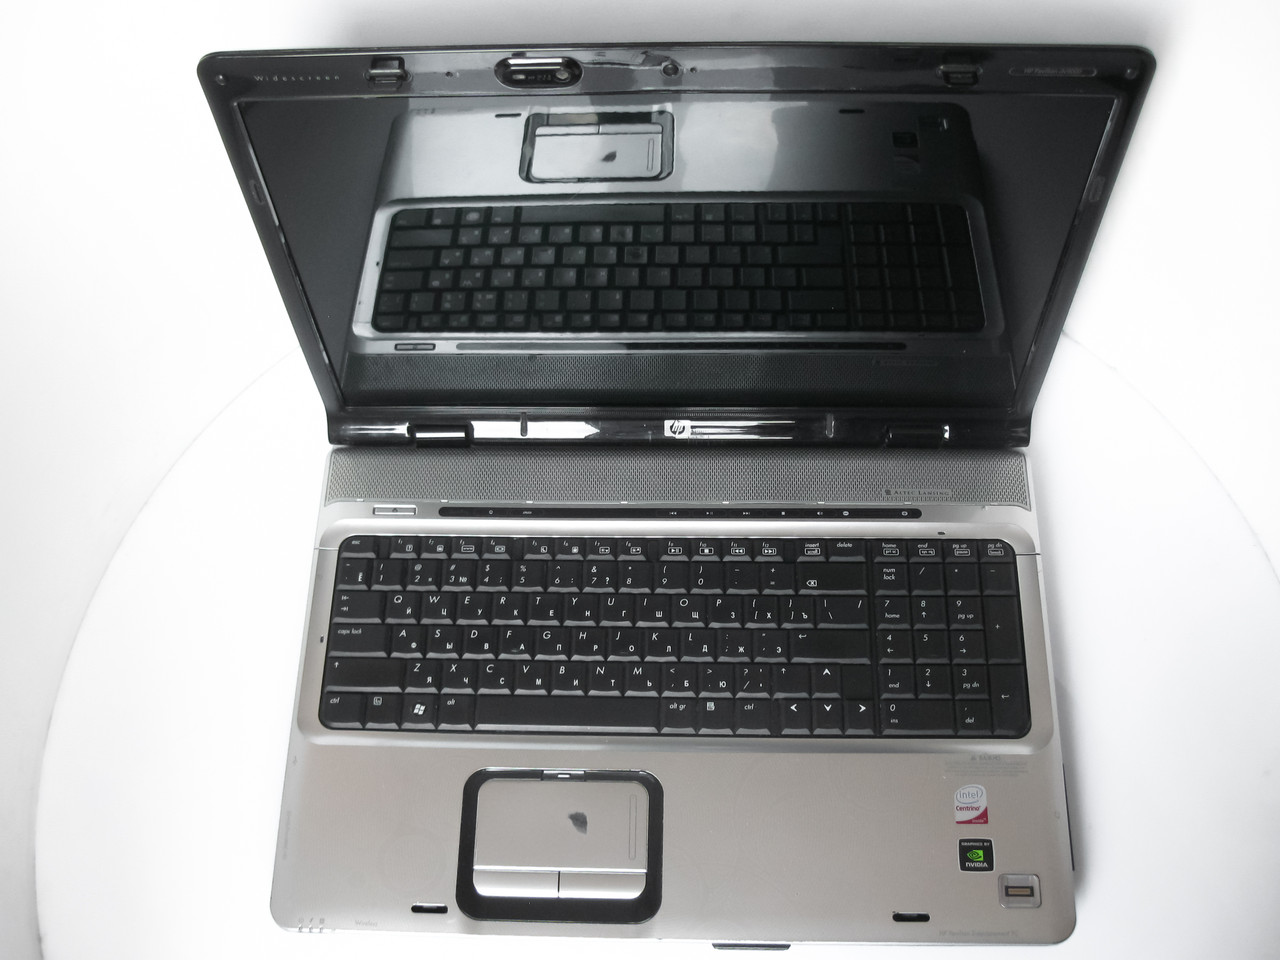 Ноутбук HP Pavilion DV9700 17 (1440x900) / Intel Core 2 Duo T5850 (2x2